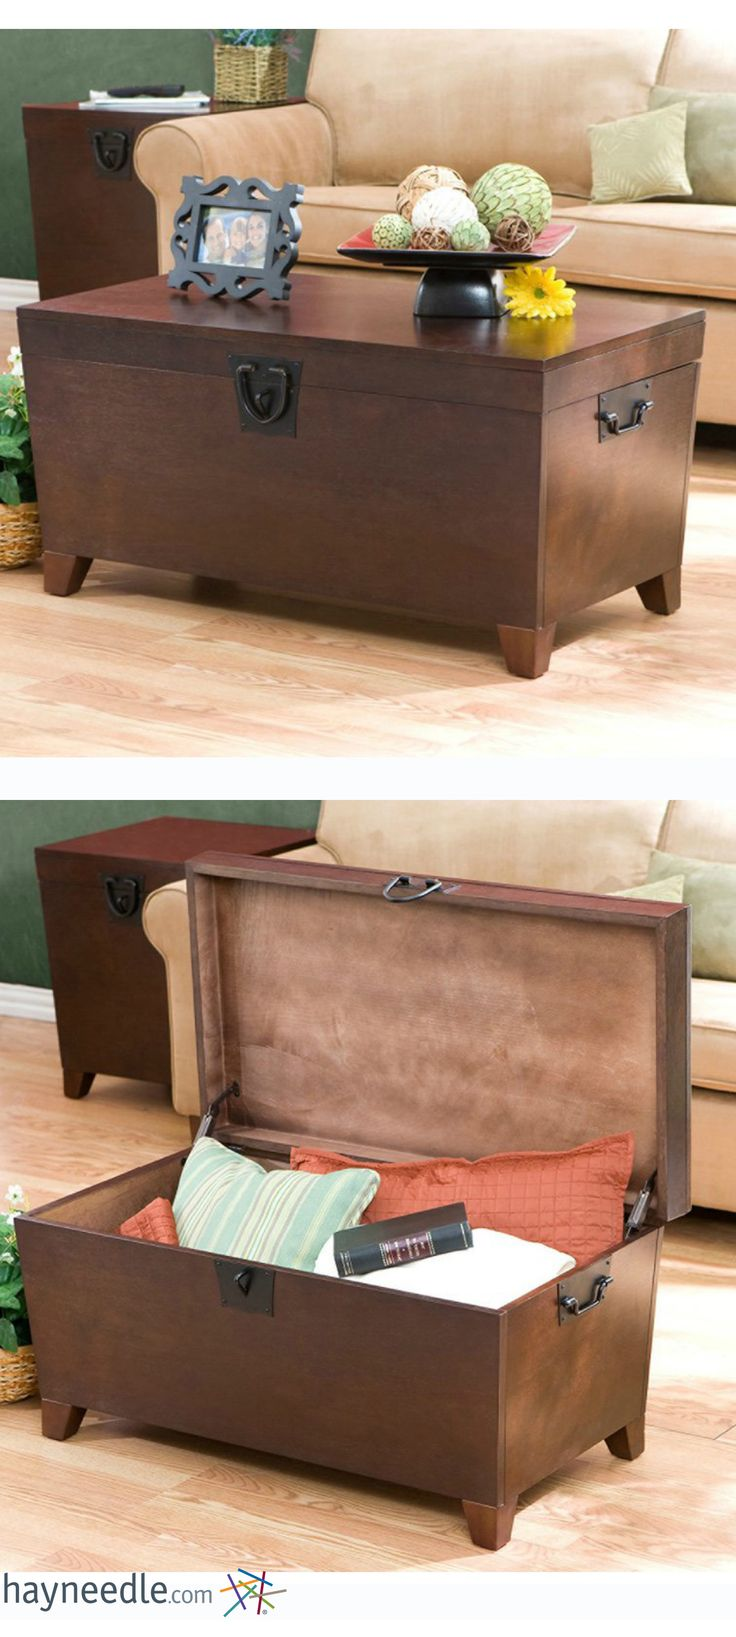 Use this coffee table as an elegant piece of furniture, or use it as storage in your home.